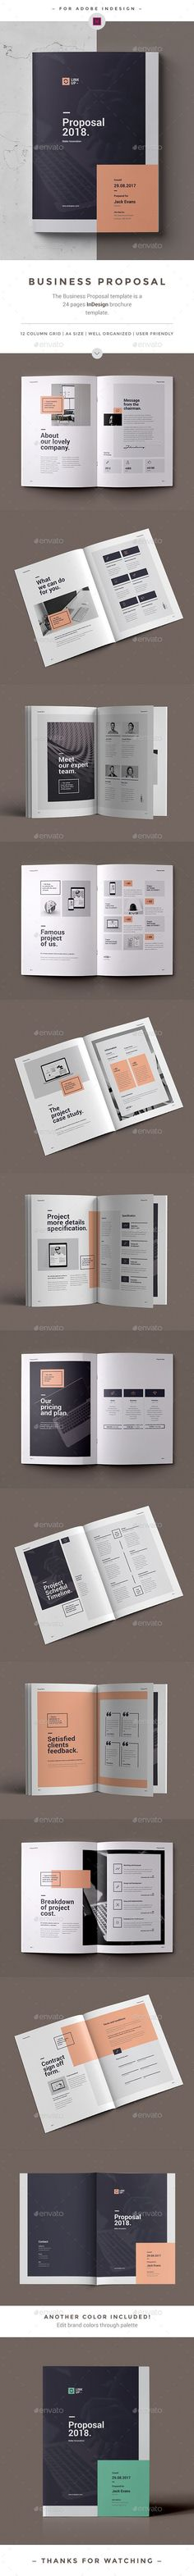 Proposal — InDesign INDD #project proposal #best proposal • Available here ➝ https://graphicriver.net/item/proposal/20775208?ref=pxcr